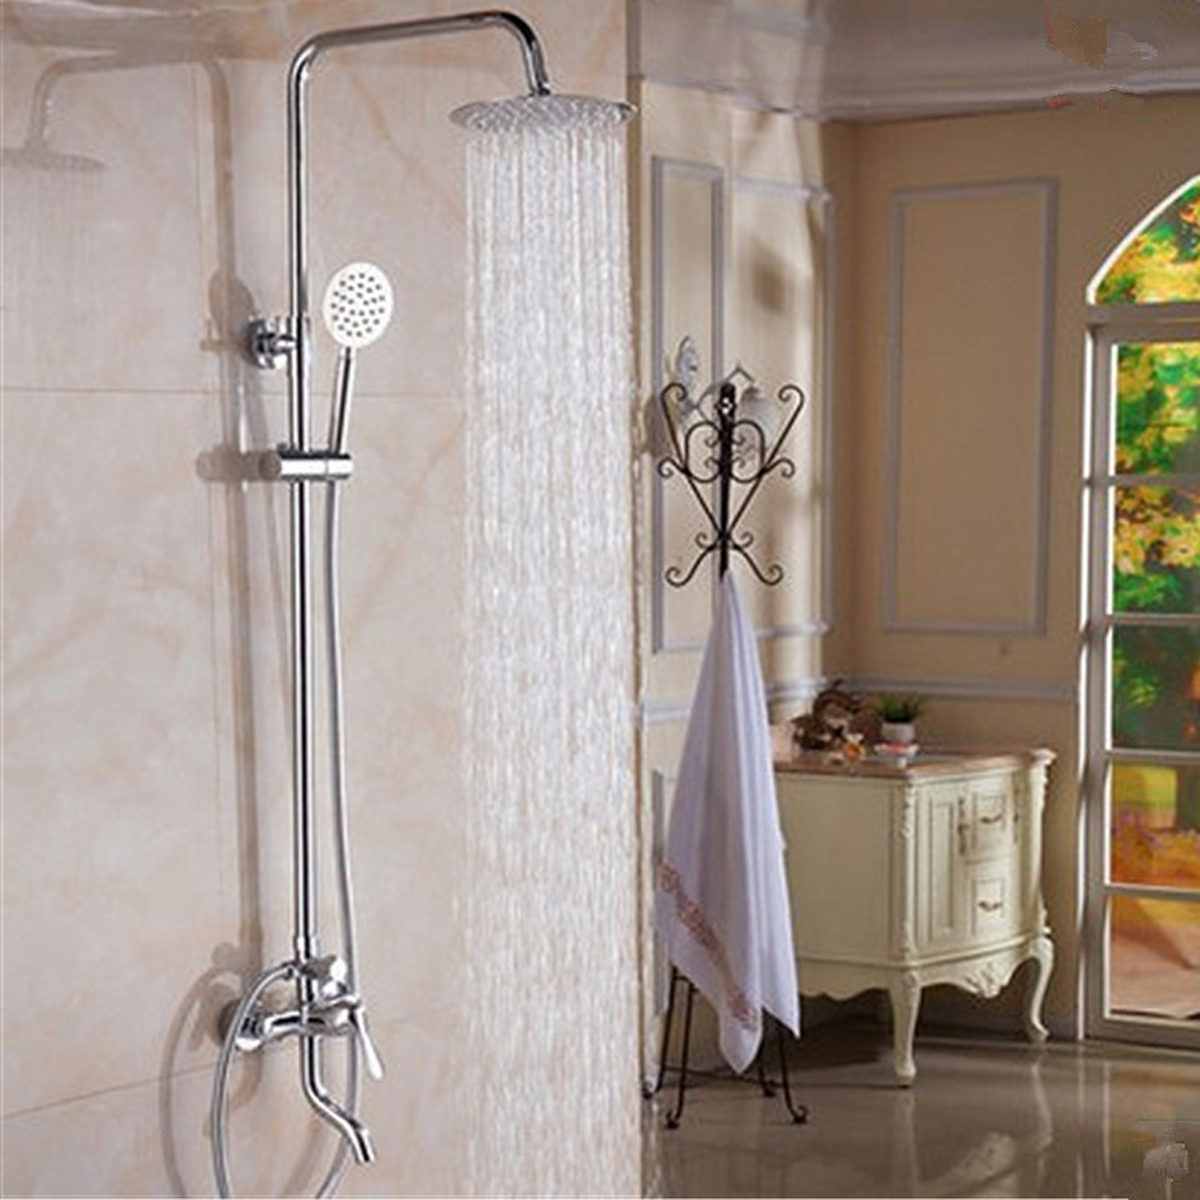 8'' Chrome Brass Polished Rainfall Shower Head Faucet Set Shower Tub Mixer Tap Saving Nozzle Aerator High Pressure Wall Mount